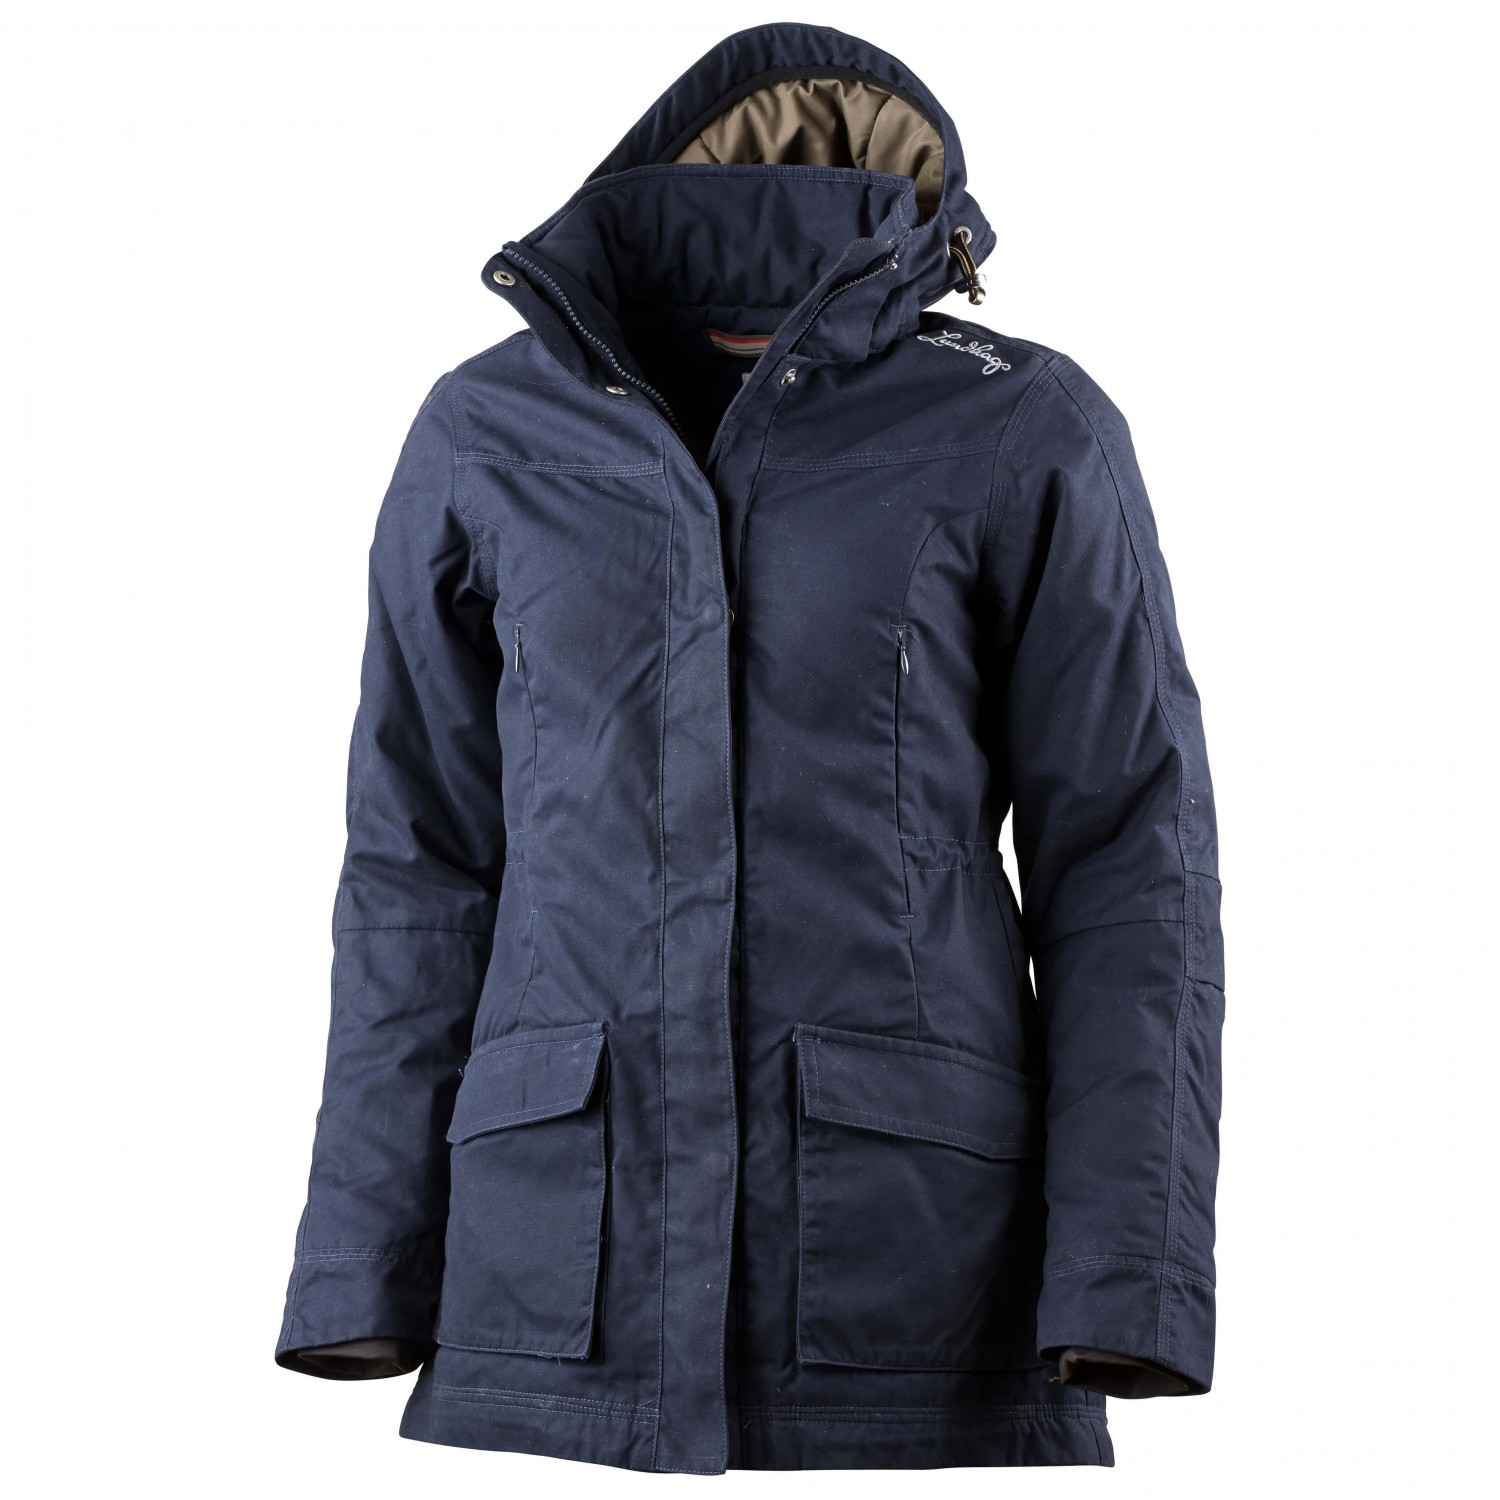 low cost Lundhags Edhe Parka Winter jacket Oat,Eclipse